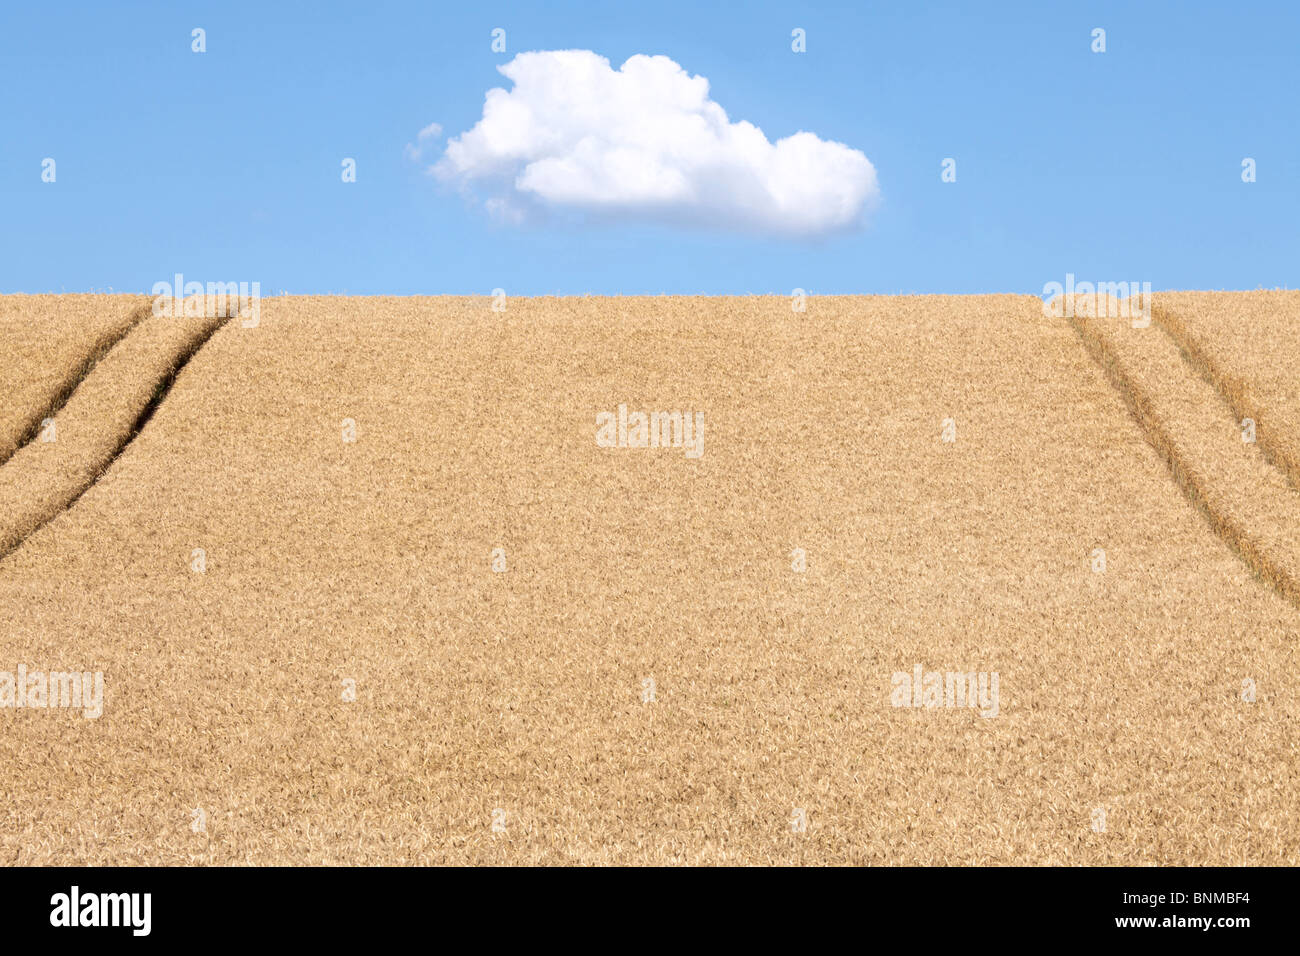 a field of wheat - Stock Image